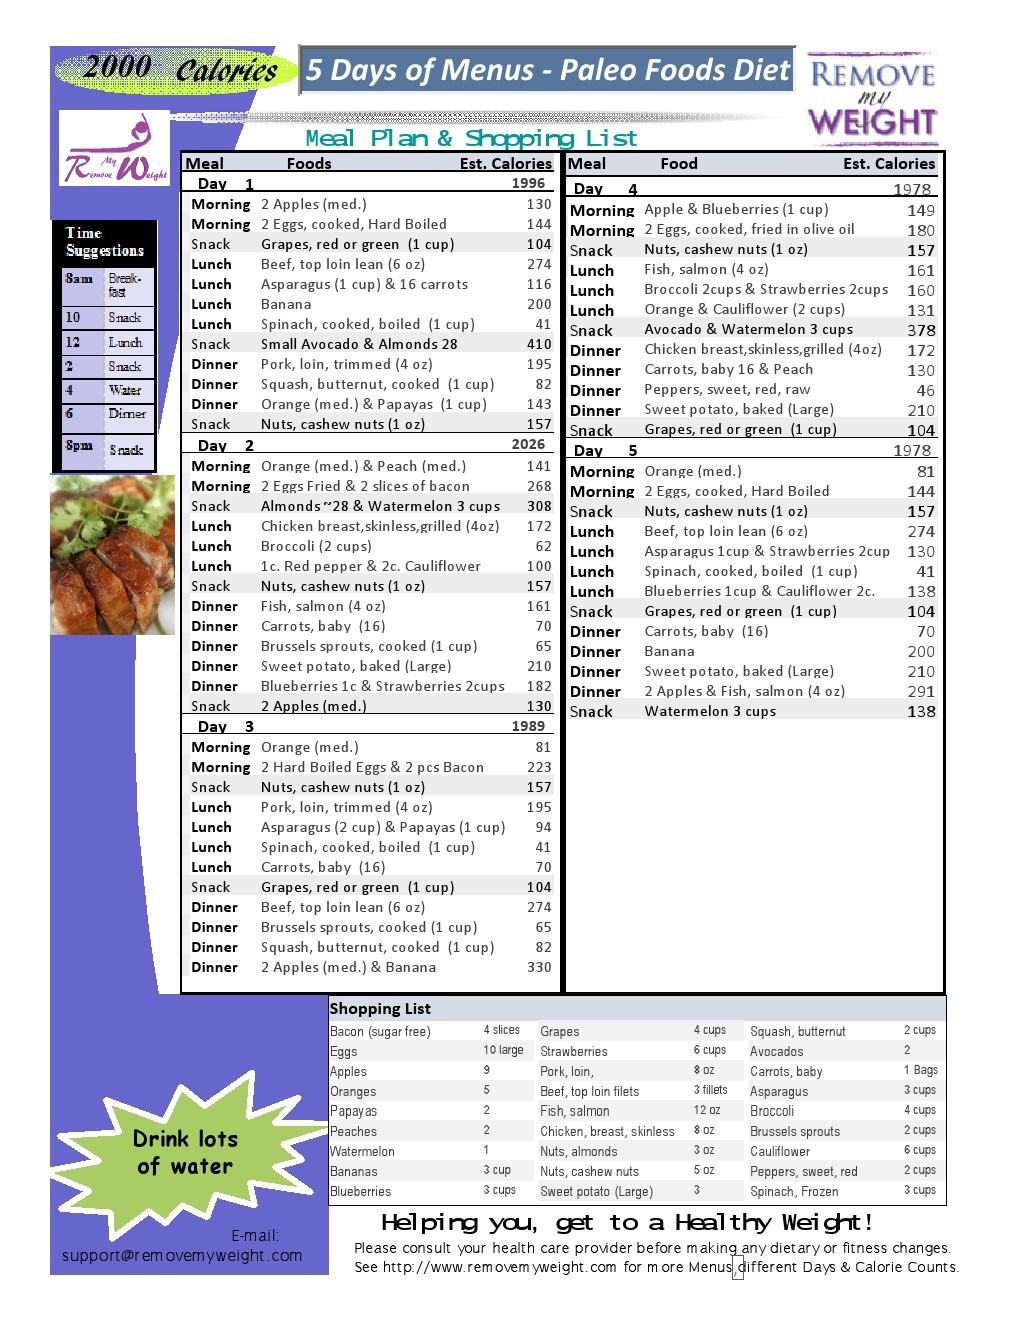 Free 2000 Calories A Day 5 Day Paleo Diet With Shoppong